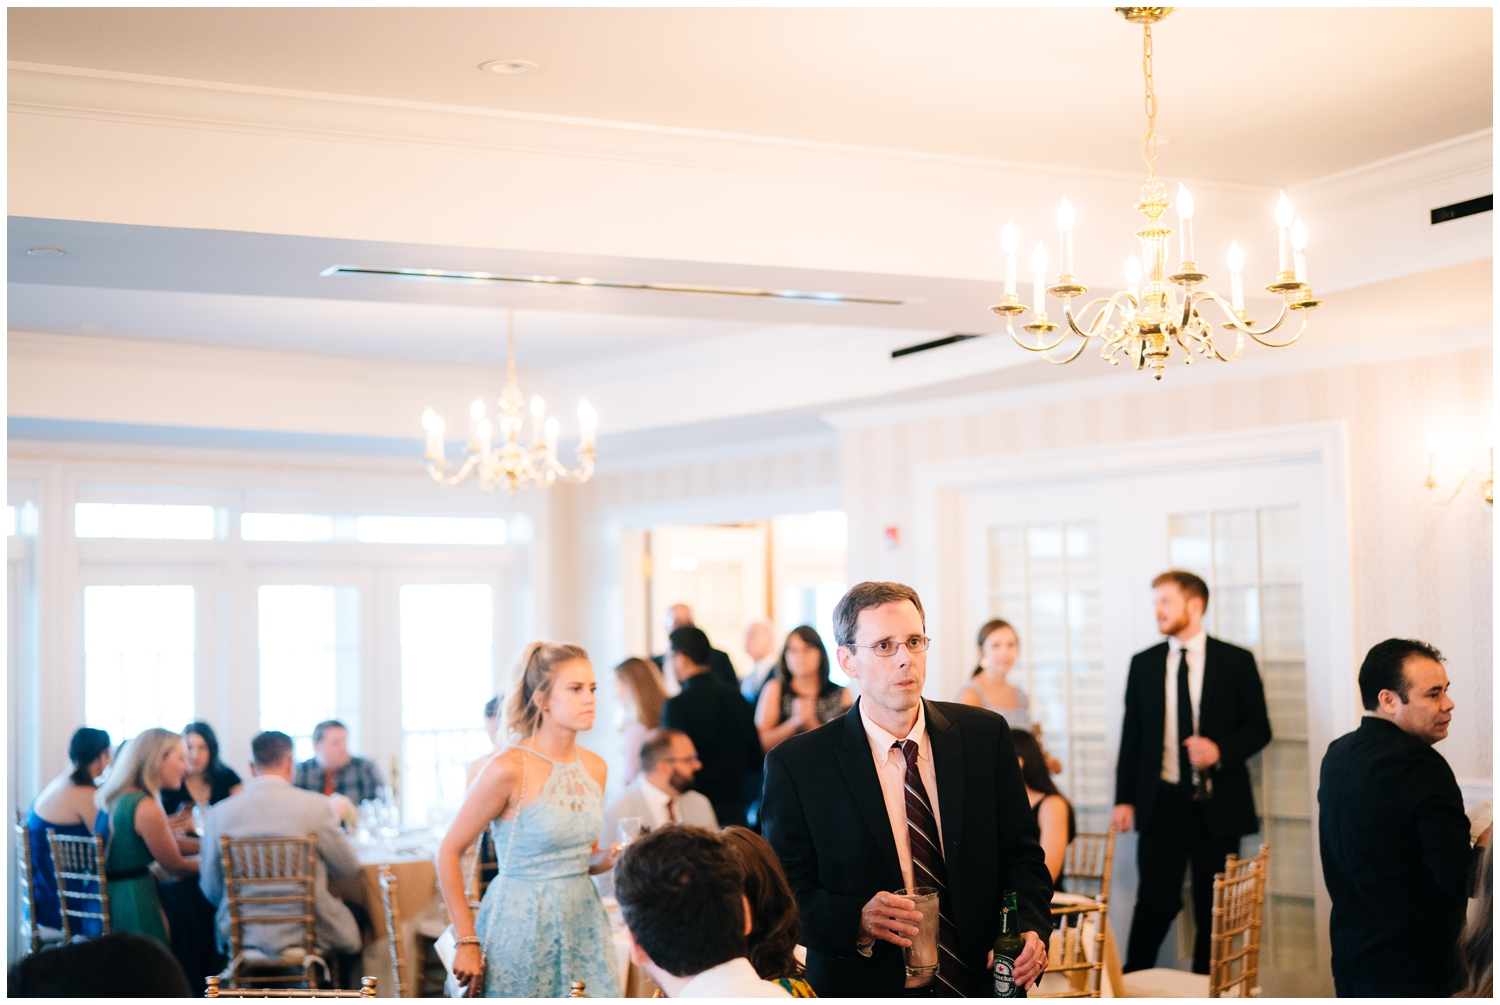 Madison Beach Hotel Wedding - Steven & Jessica_0188.jpg